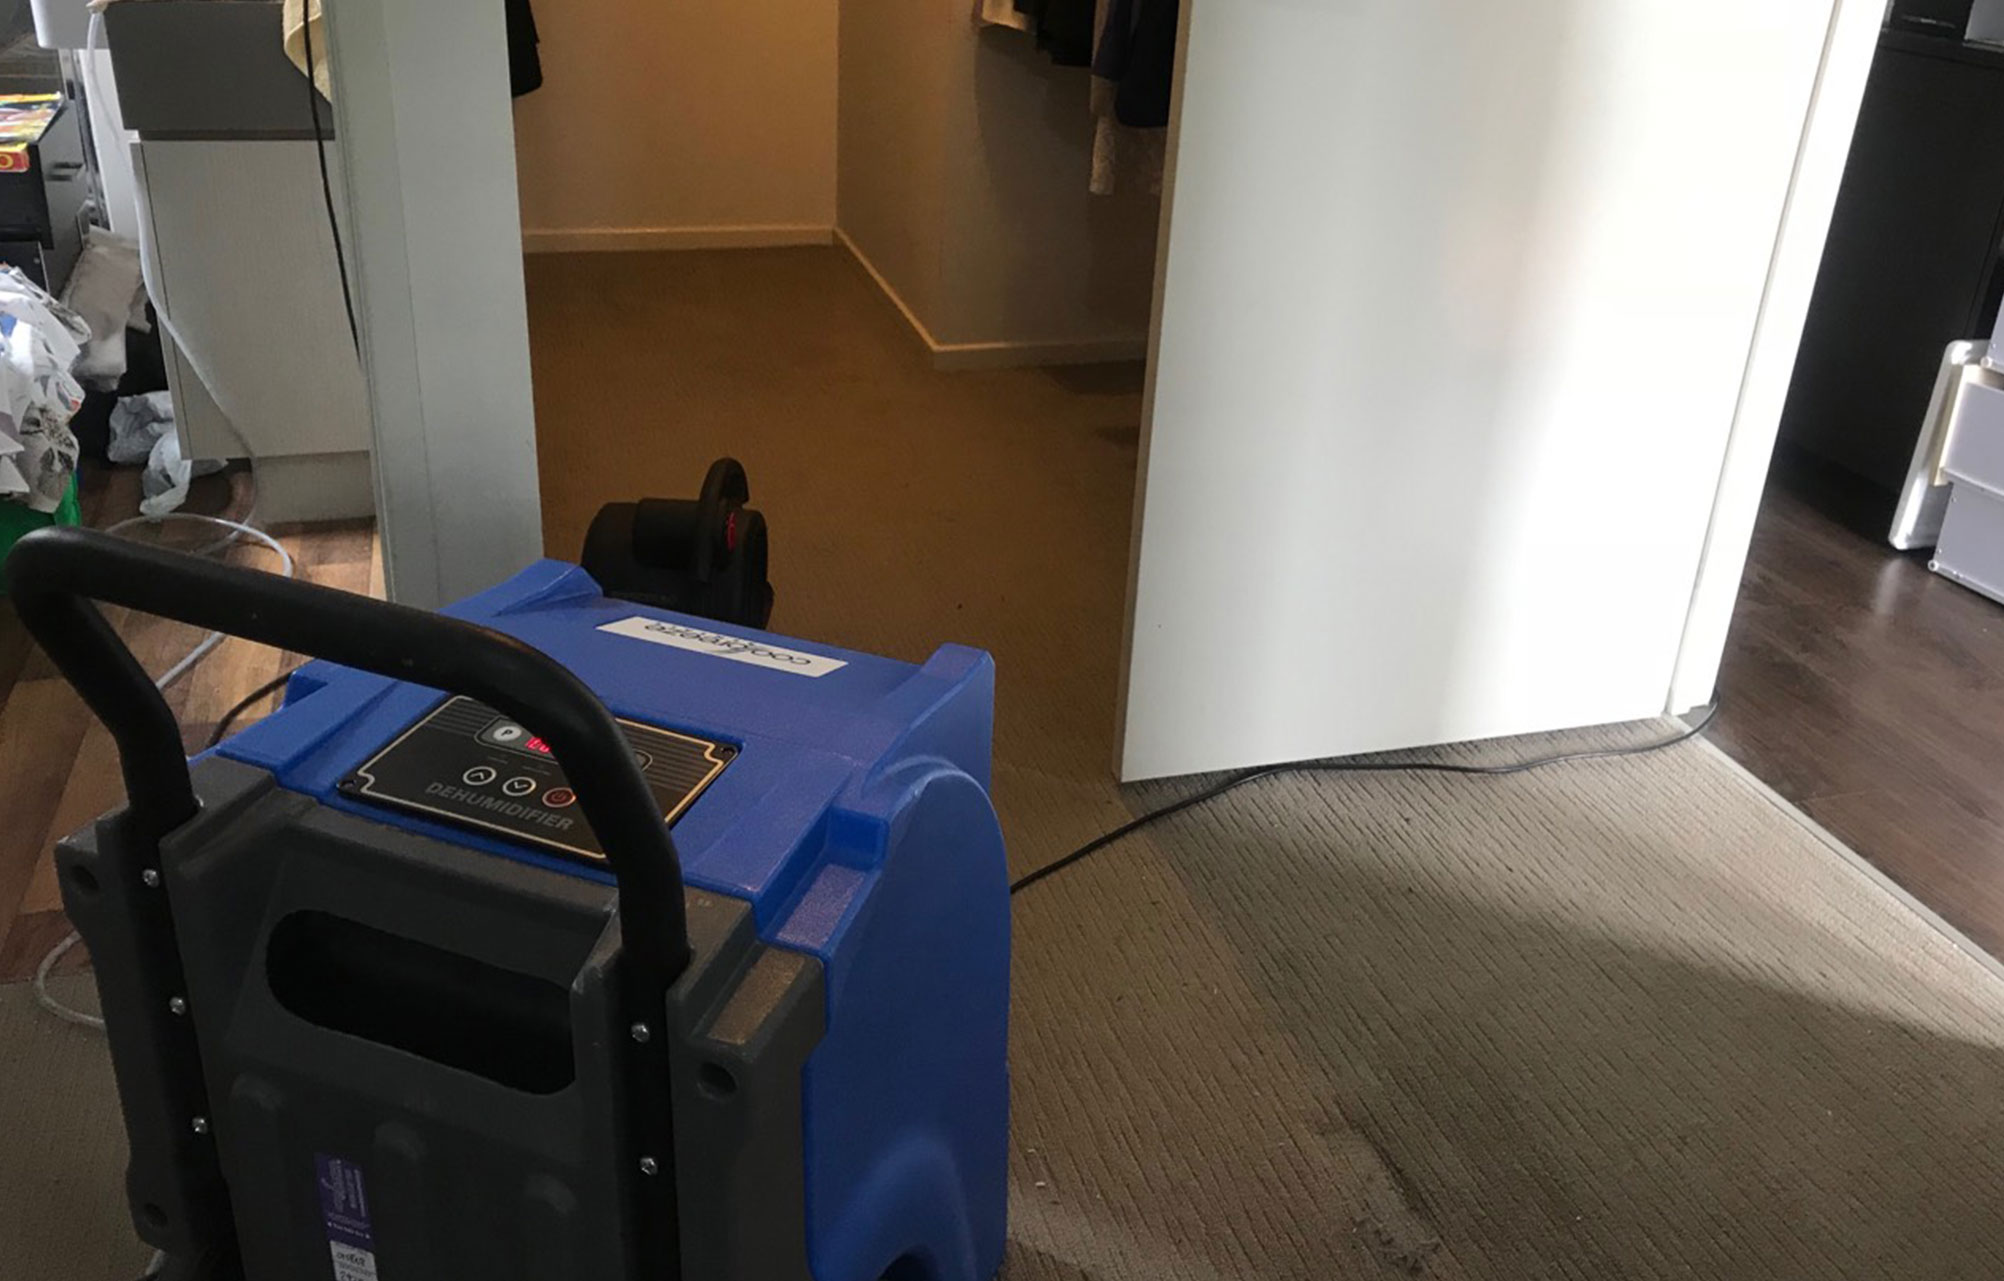 https://www.steamfreshcarpetcleaning.com.au/wp-content/uploads/2019/02/Flood-Damage-Restoration-2.jpg